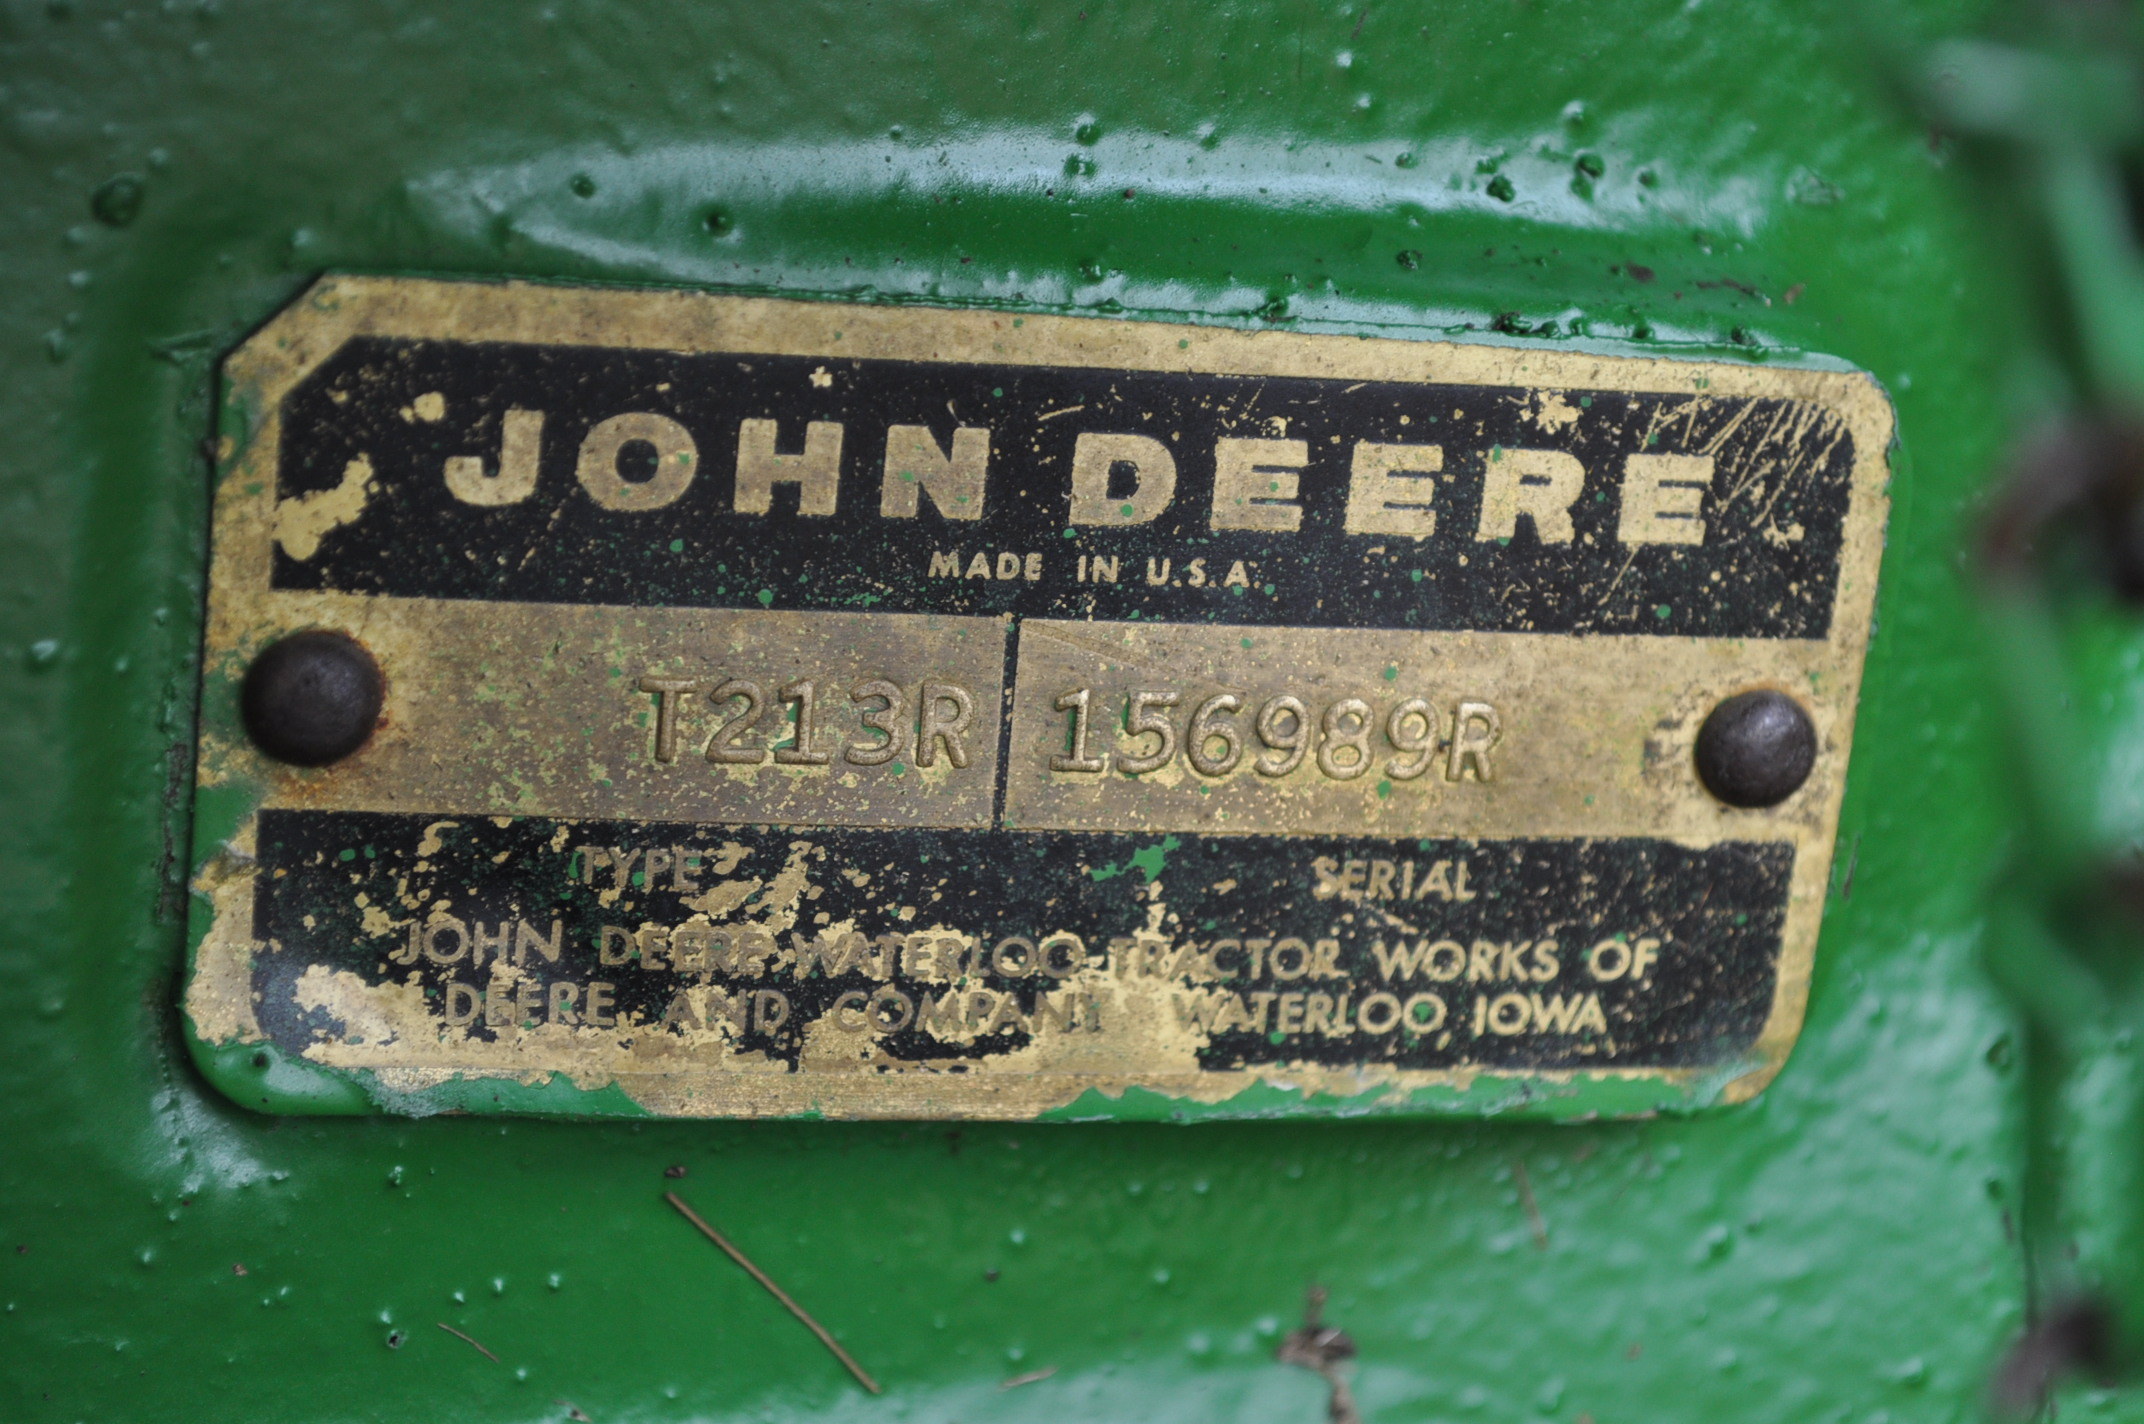 John Deere 4020 tractor, diesel, 18.4-34 tires w/ clamp on dual rims, 11L-15 front, ROPS w/ - Image 16 of 22